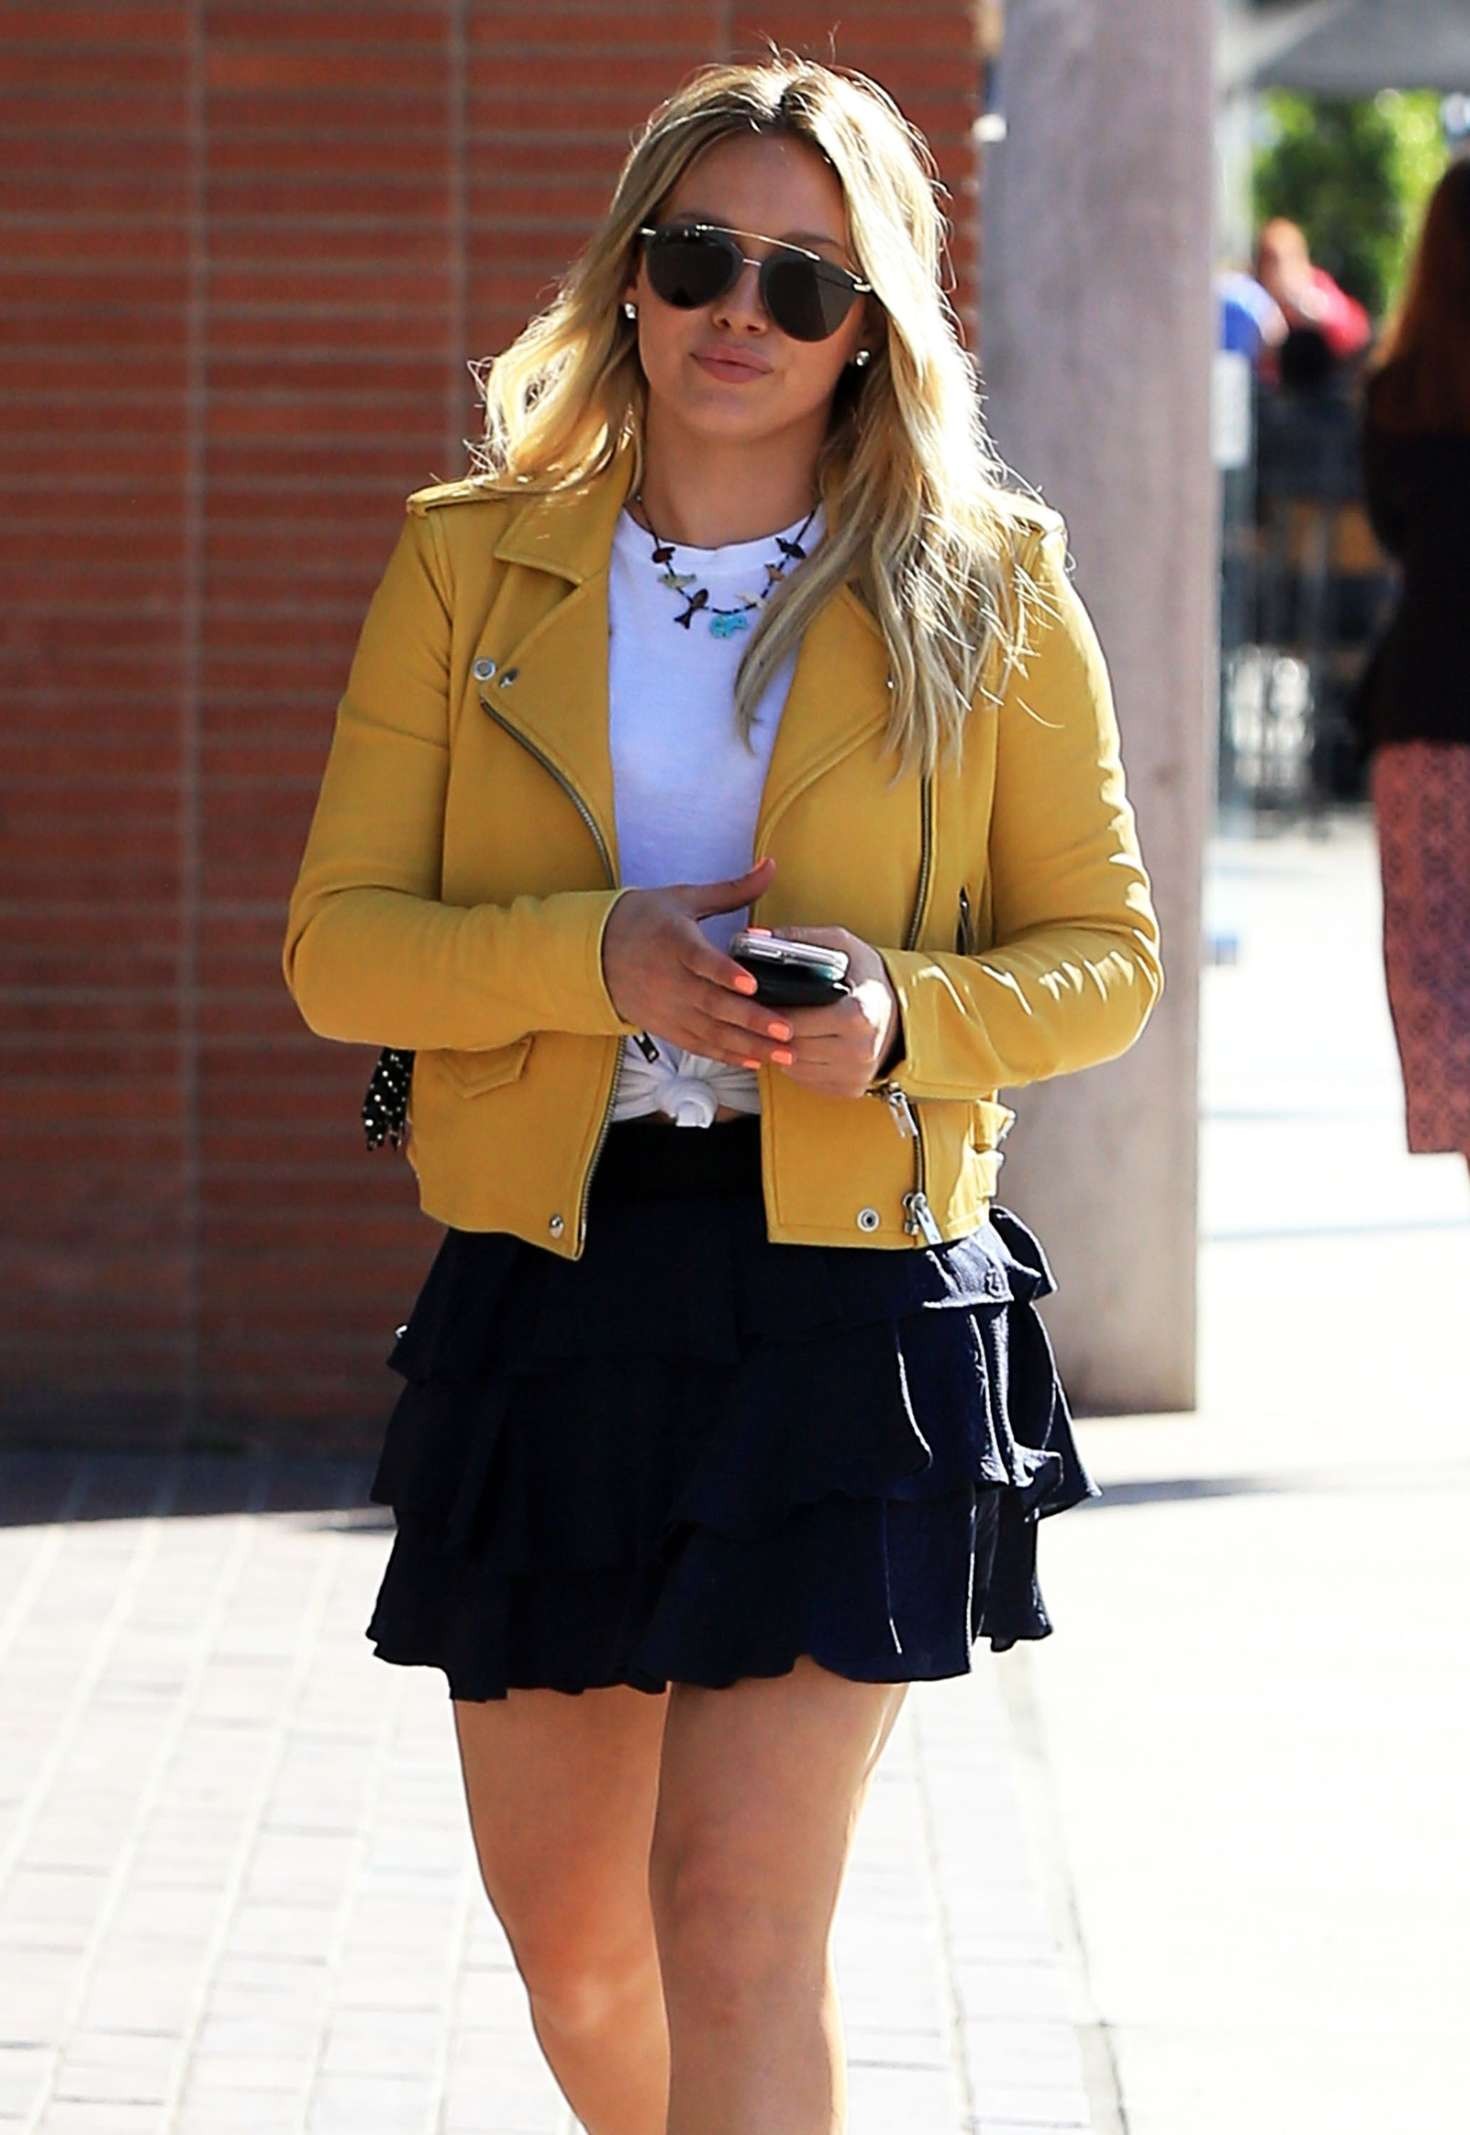 Hilary Duff in Short Skirt out in Beverly Hills